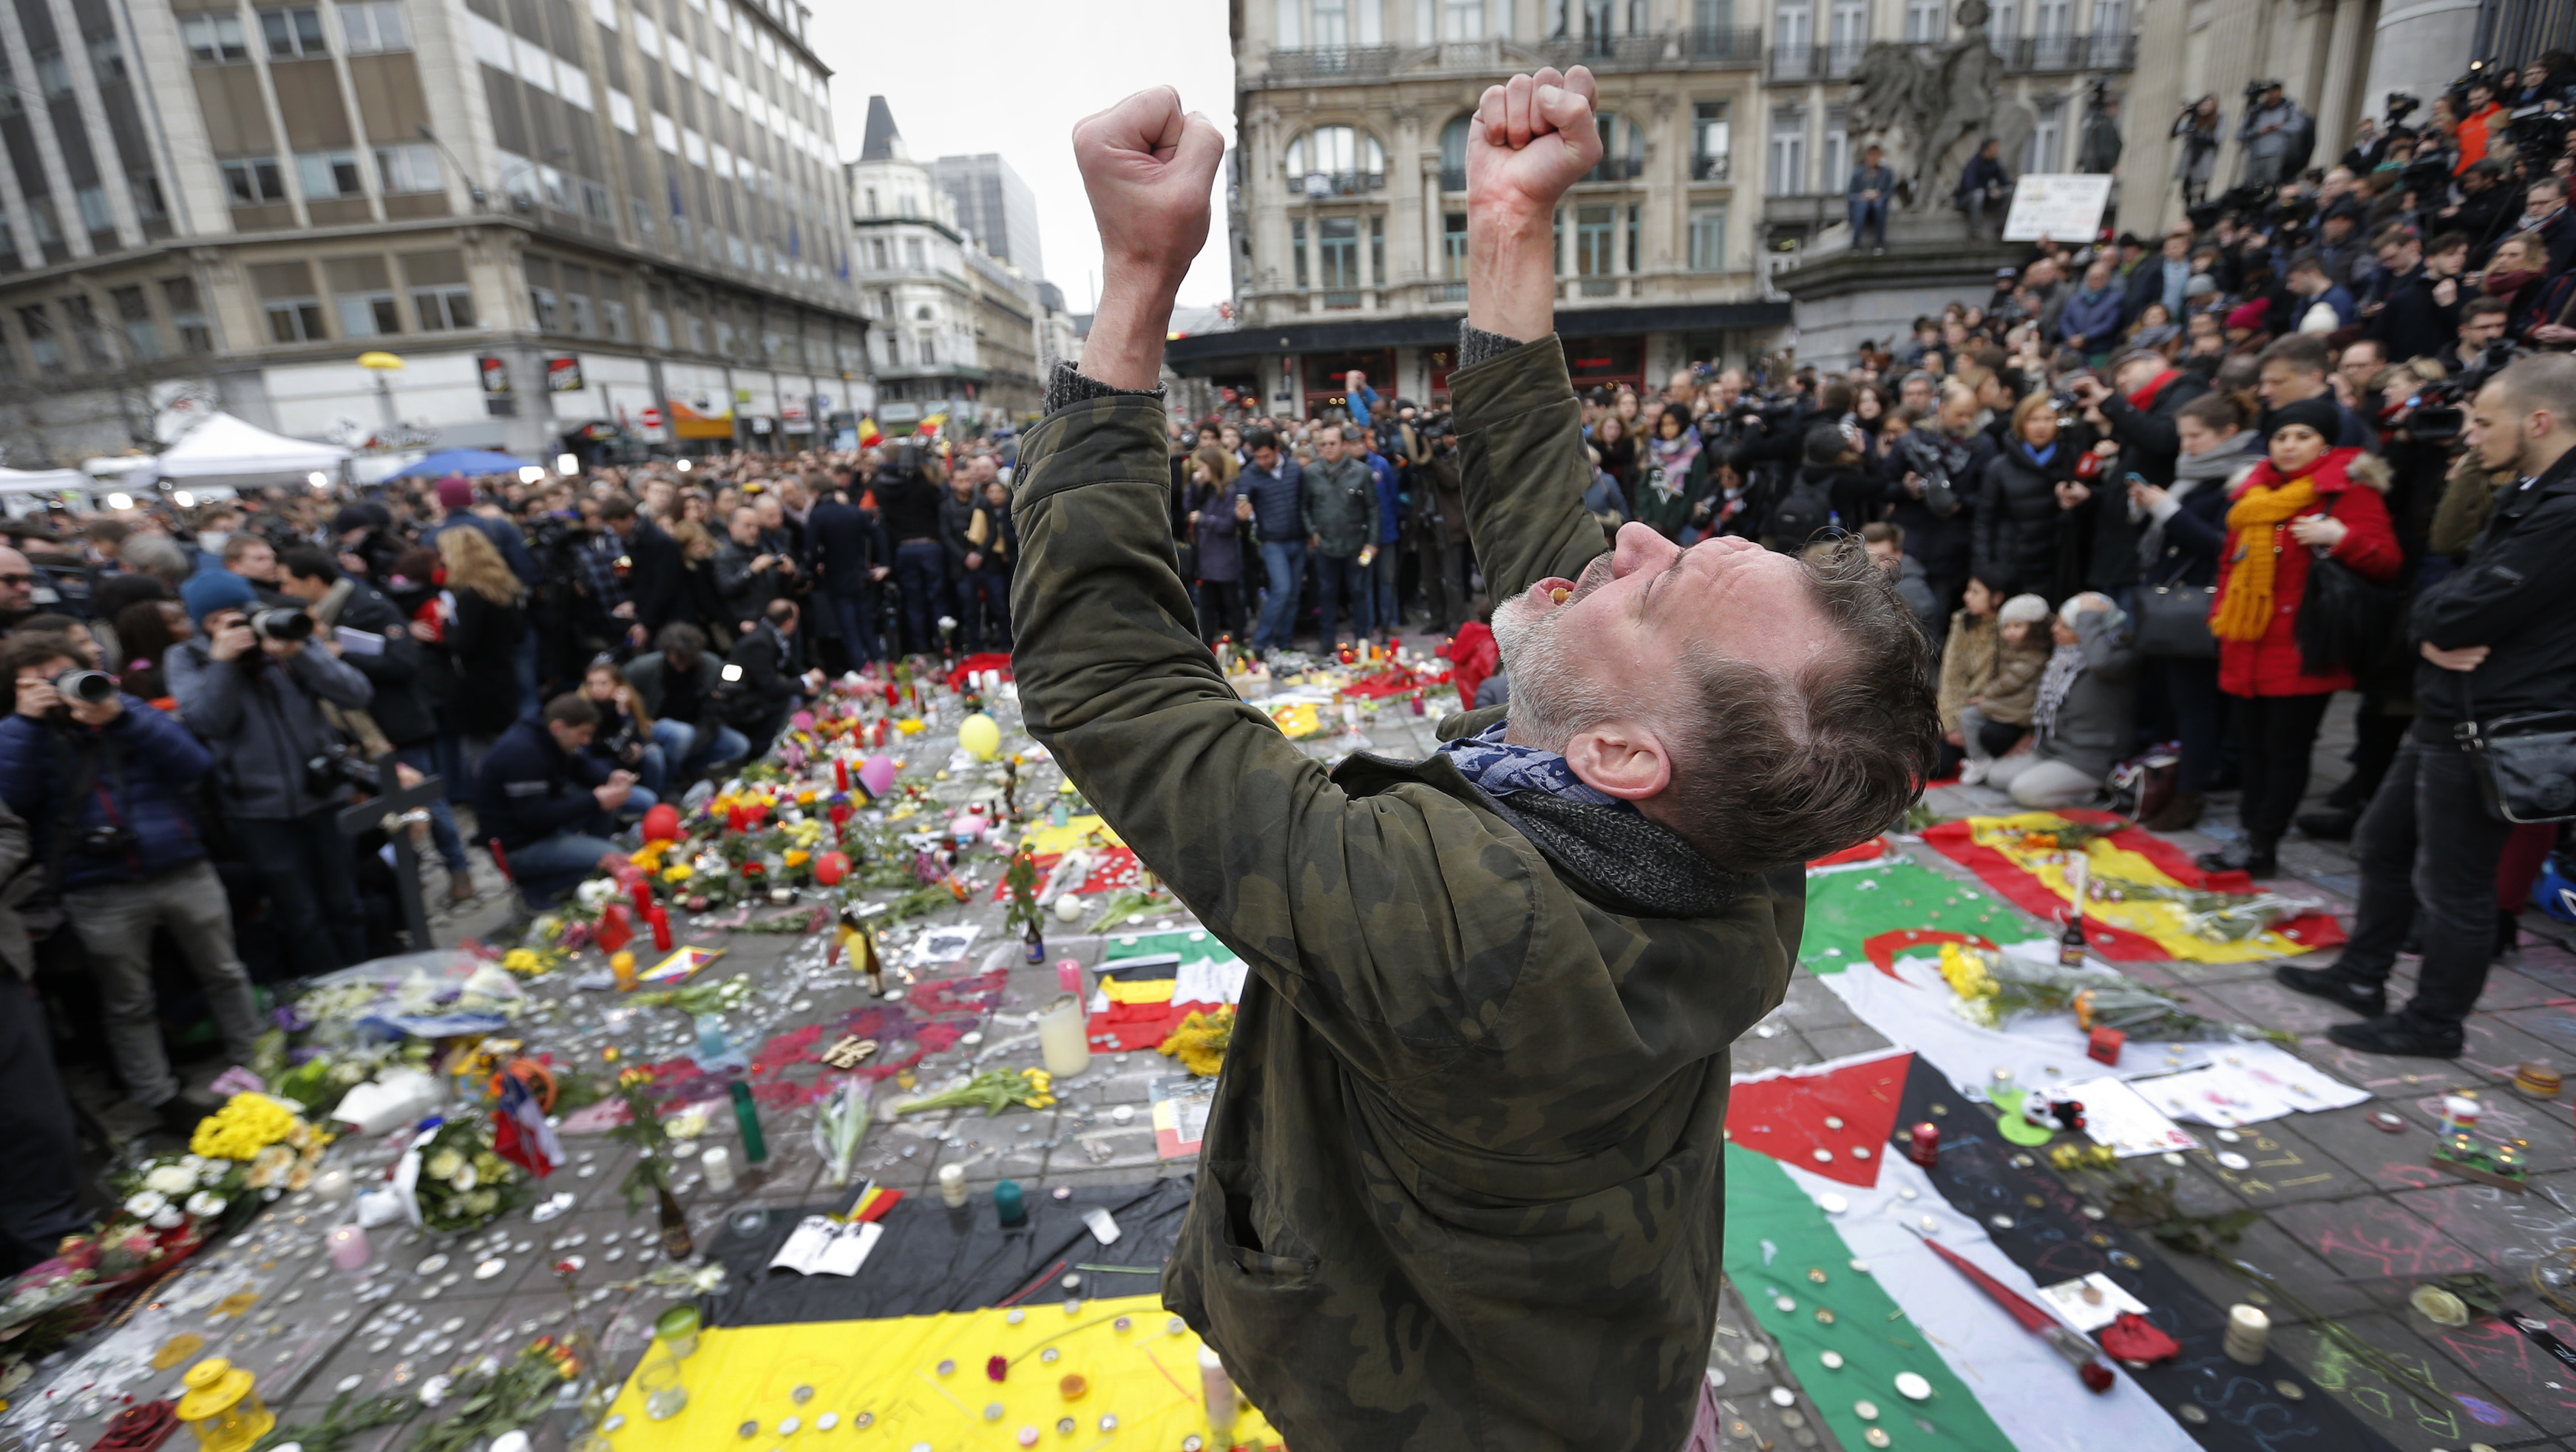 A man reacts at a street memorial following bomb attacks in Brussels, Belgium